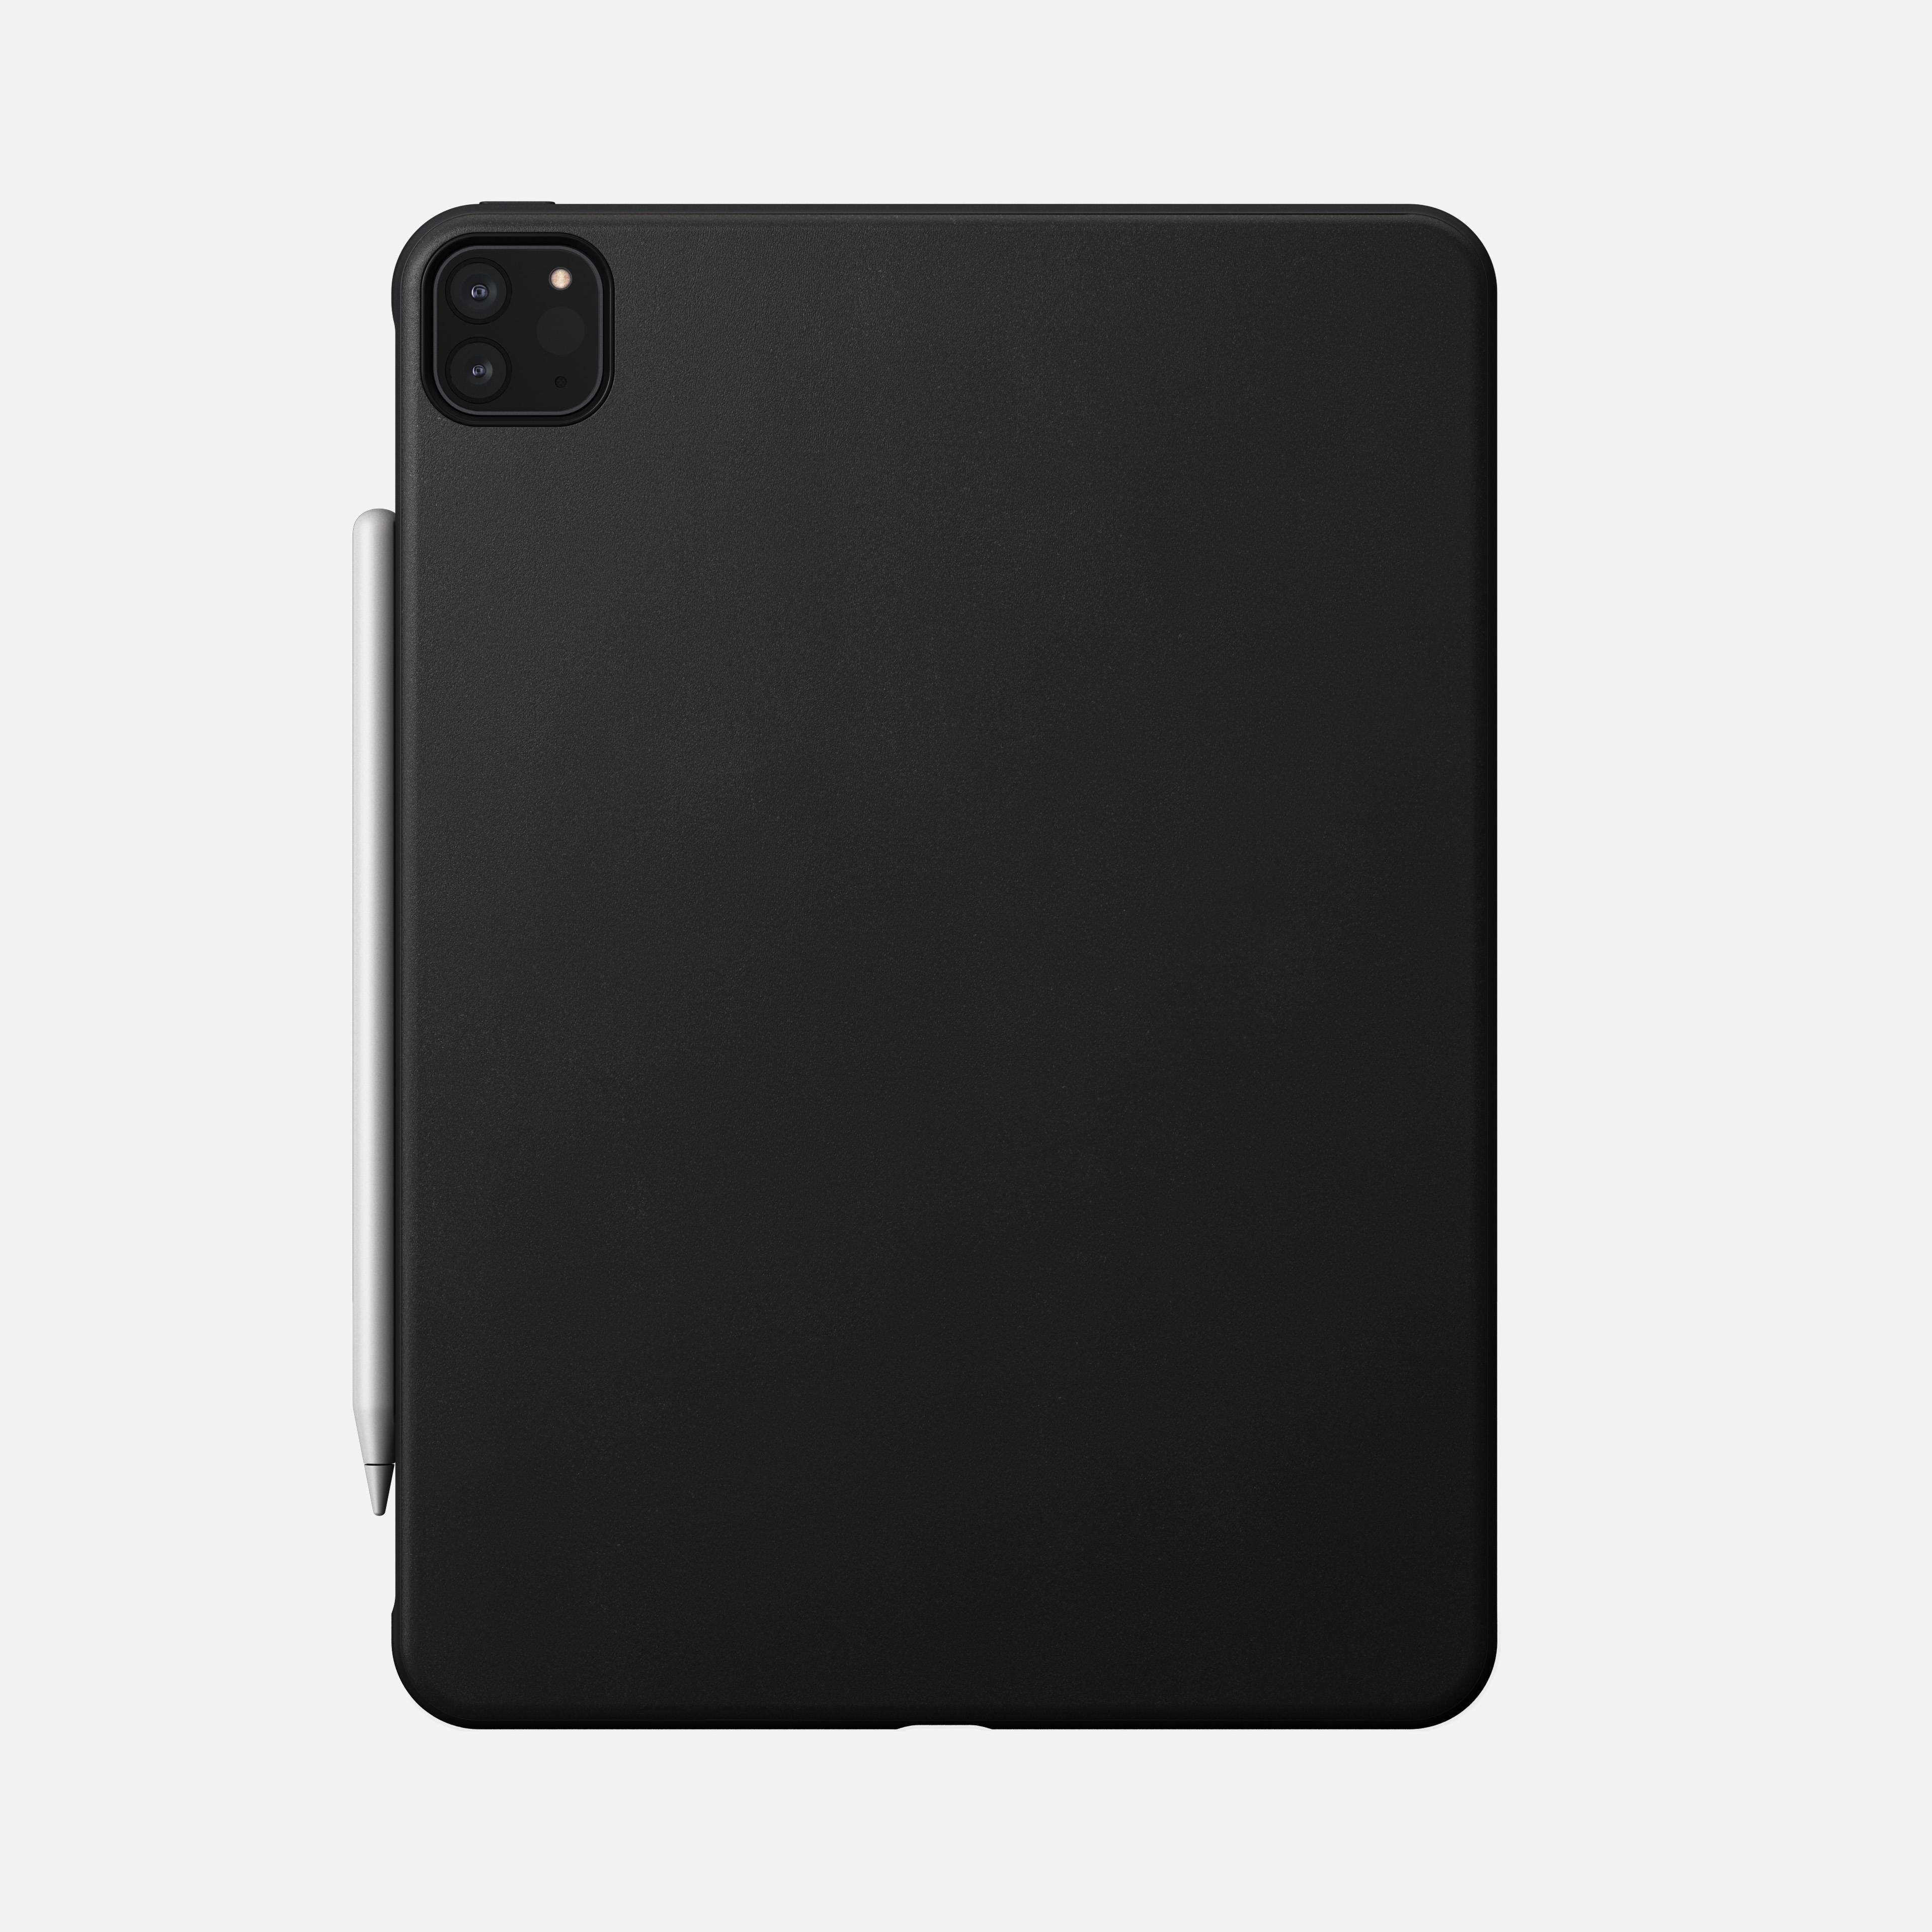 Rugged case horween leather black ipad pro 11 inch 2nd generation